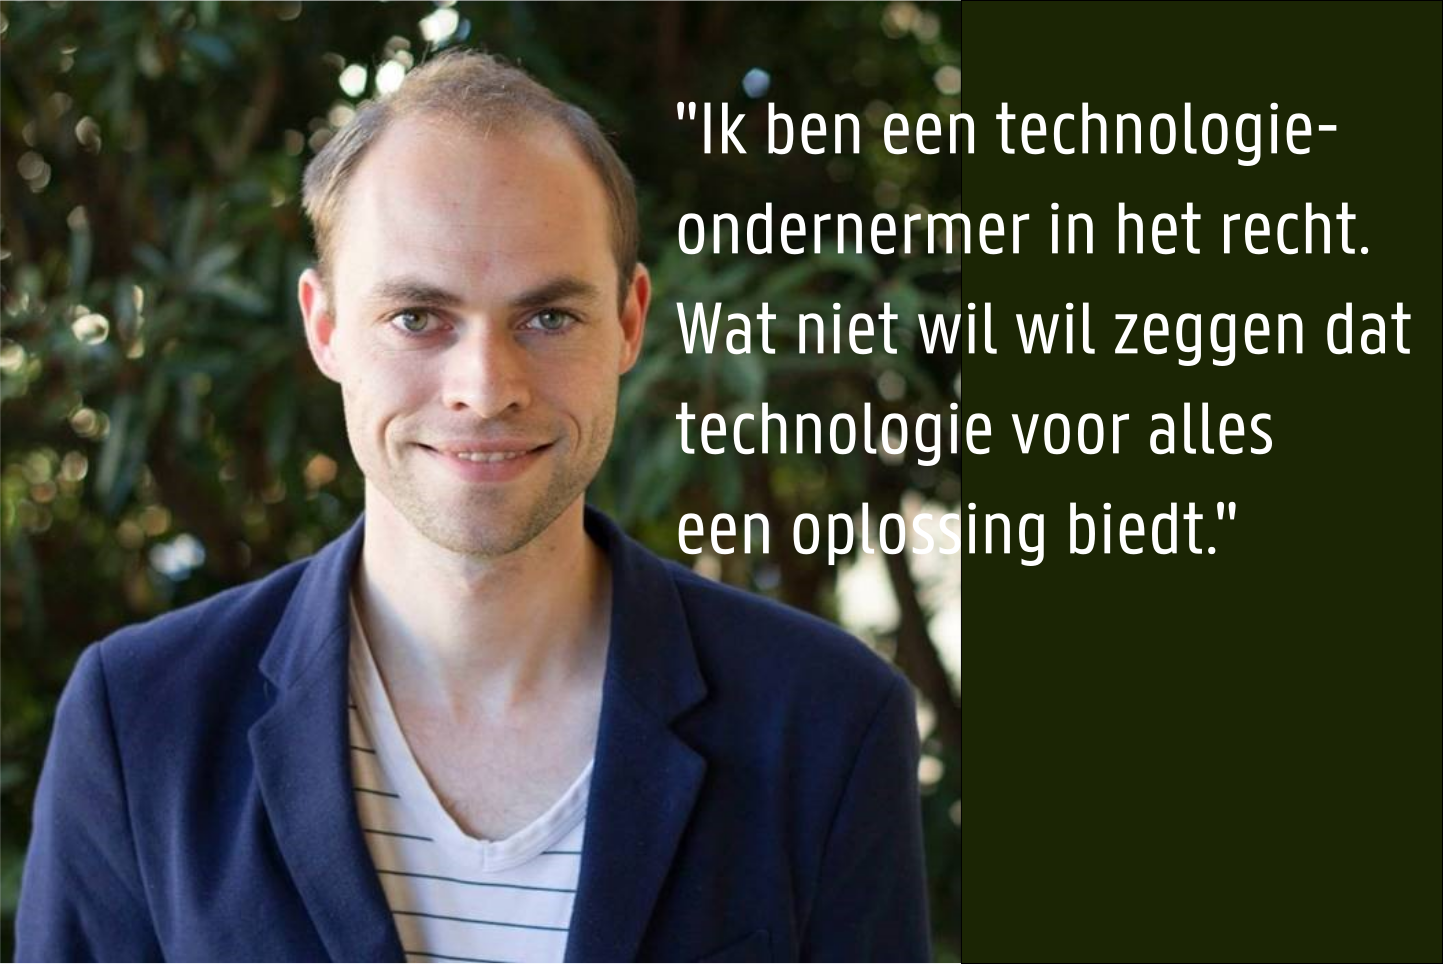 Pieter Gunst - Mede-oprichter van LawGives en later Legal.io